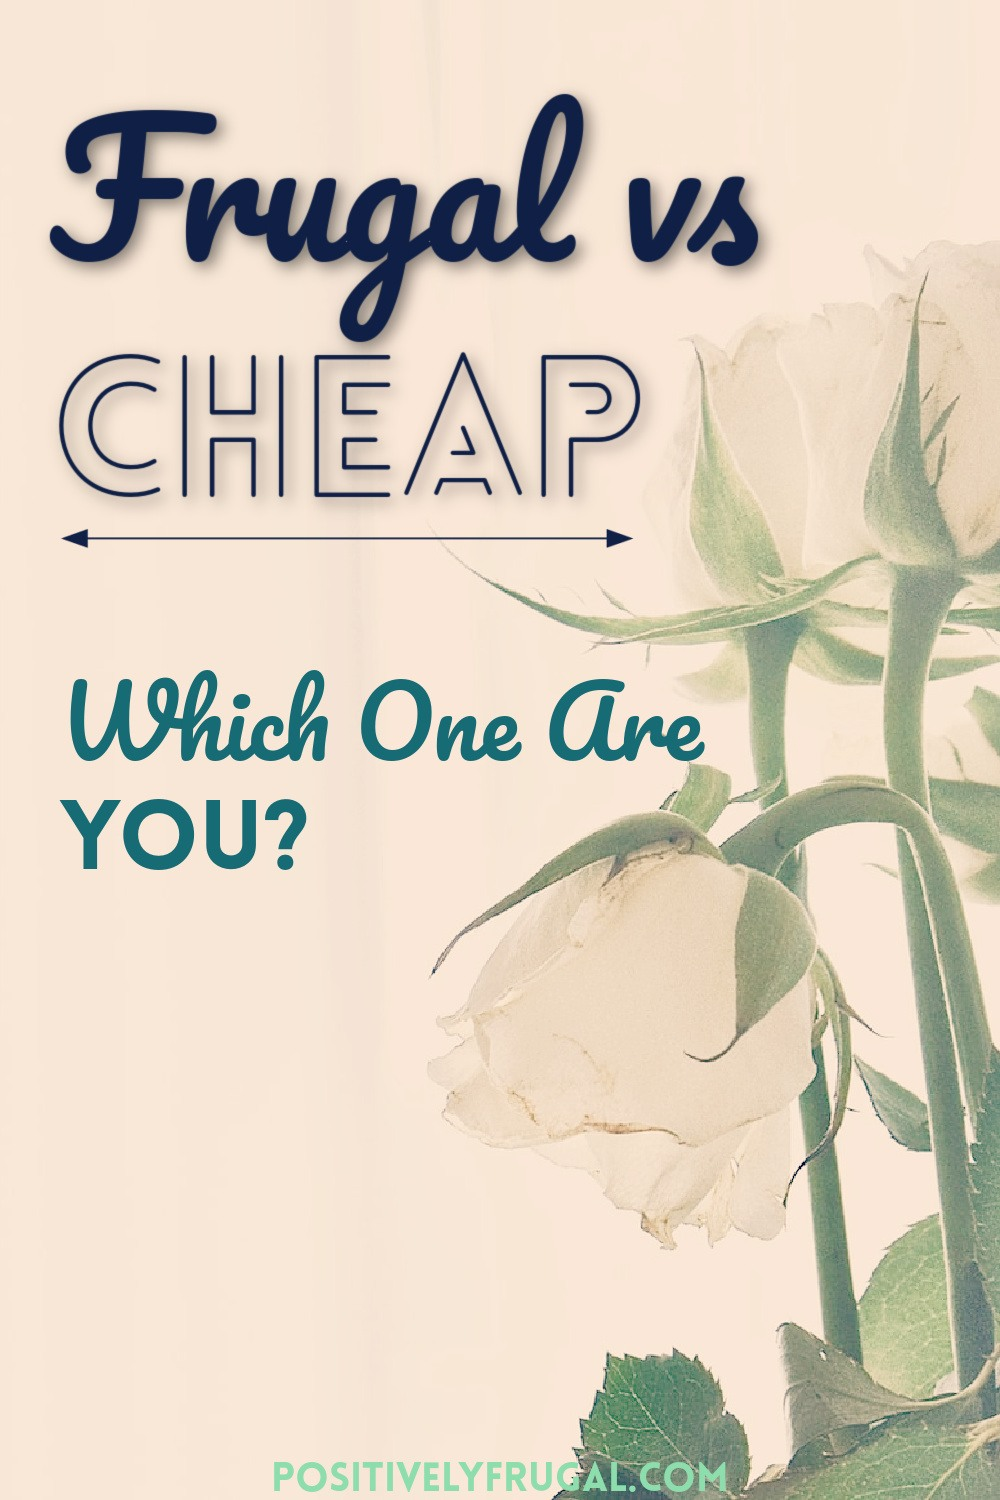 Frugal vs Cheap Which One Are You by PositivelyFrugal.com